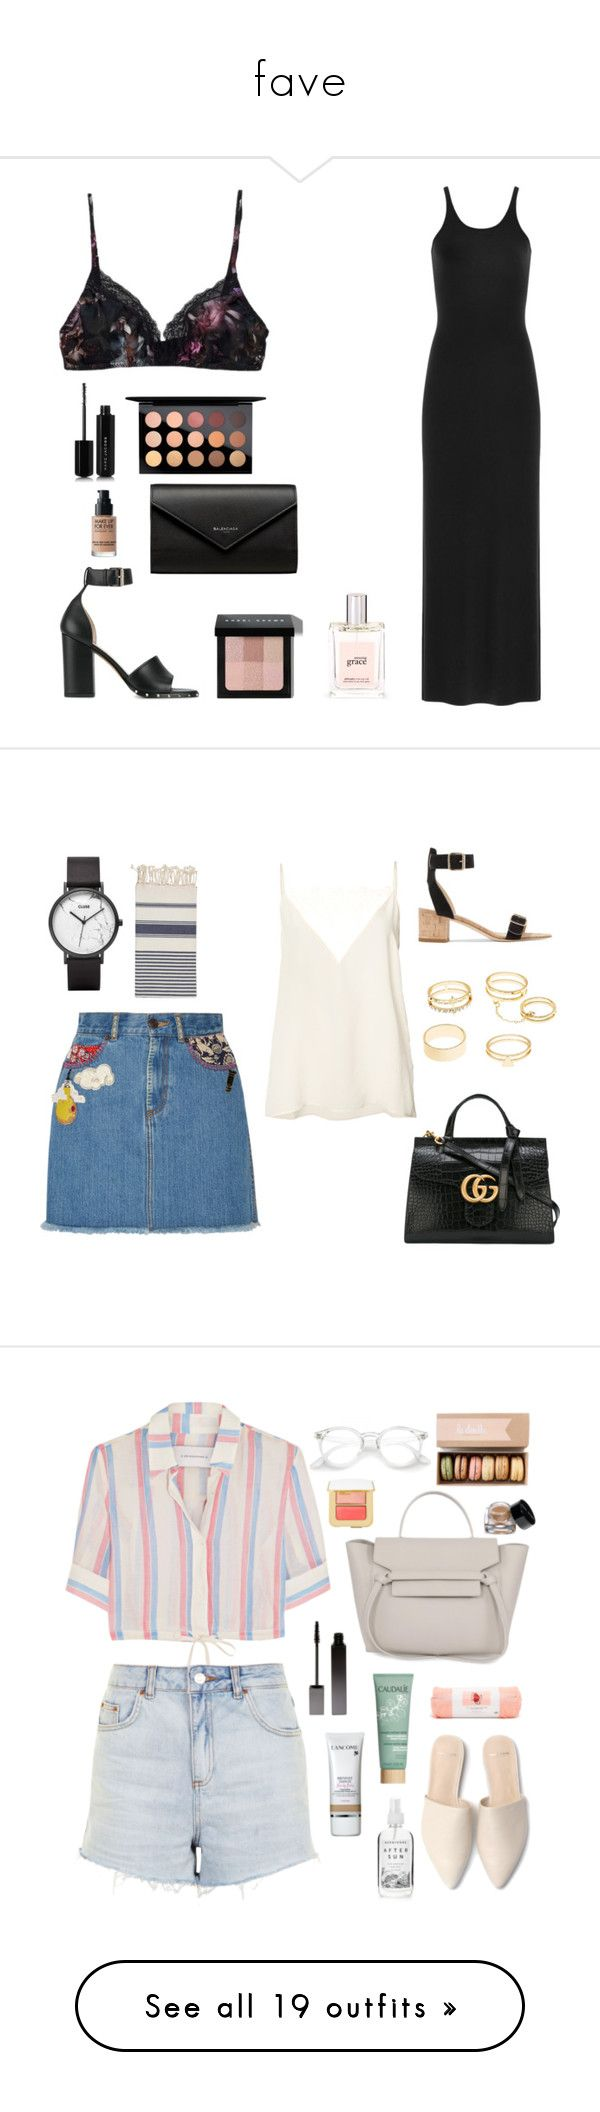 """""""fave"""" by florafow ❤ liked on Polyvore featuring Samantha Chang, T By Alexander Wang, Valentino, Balenciaga, Marc Jacobs, MAC Cosmetics, MAKE UP FOR EVER, Bobbi Brown Cosmetics, philosophy and Anine Bing"""